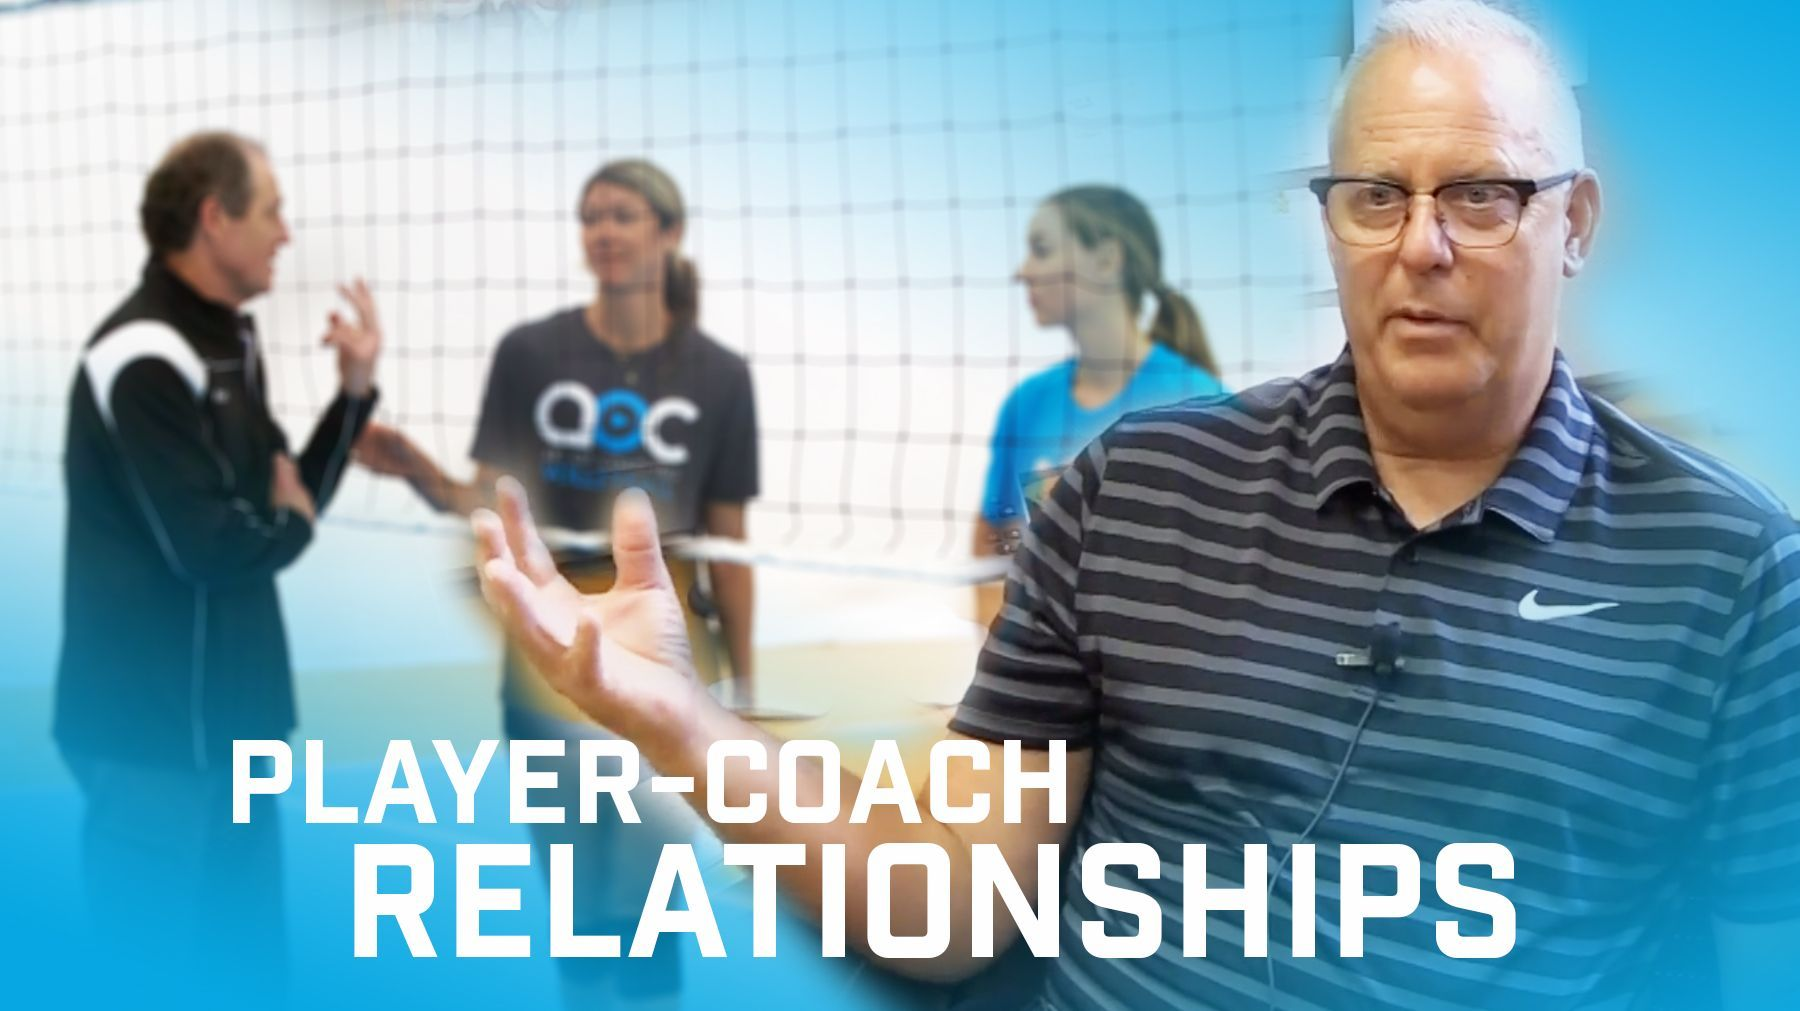 Player Coach Relationships Coaching Volleyball Coaching Interpersonal Relationship